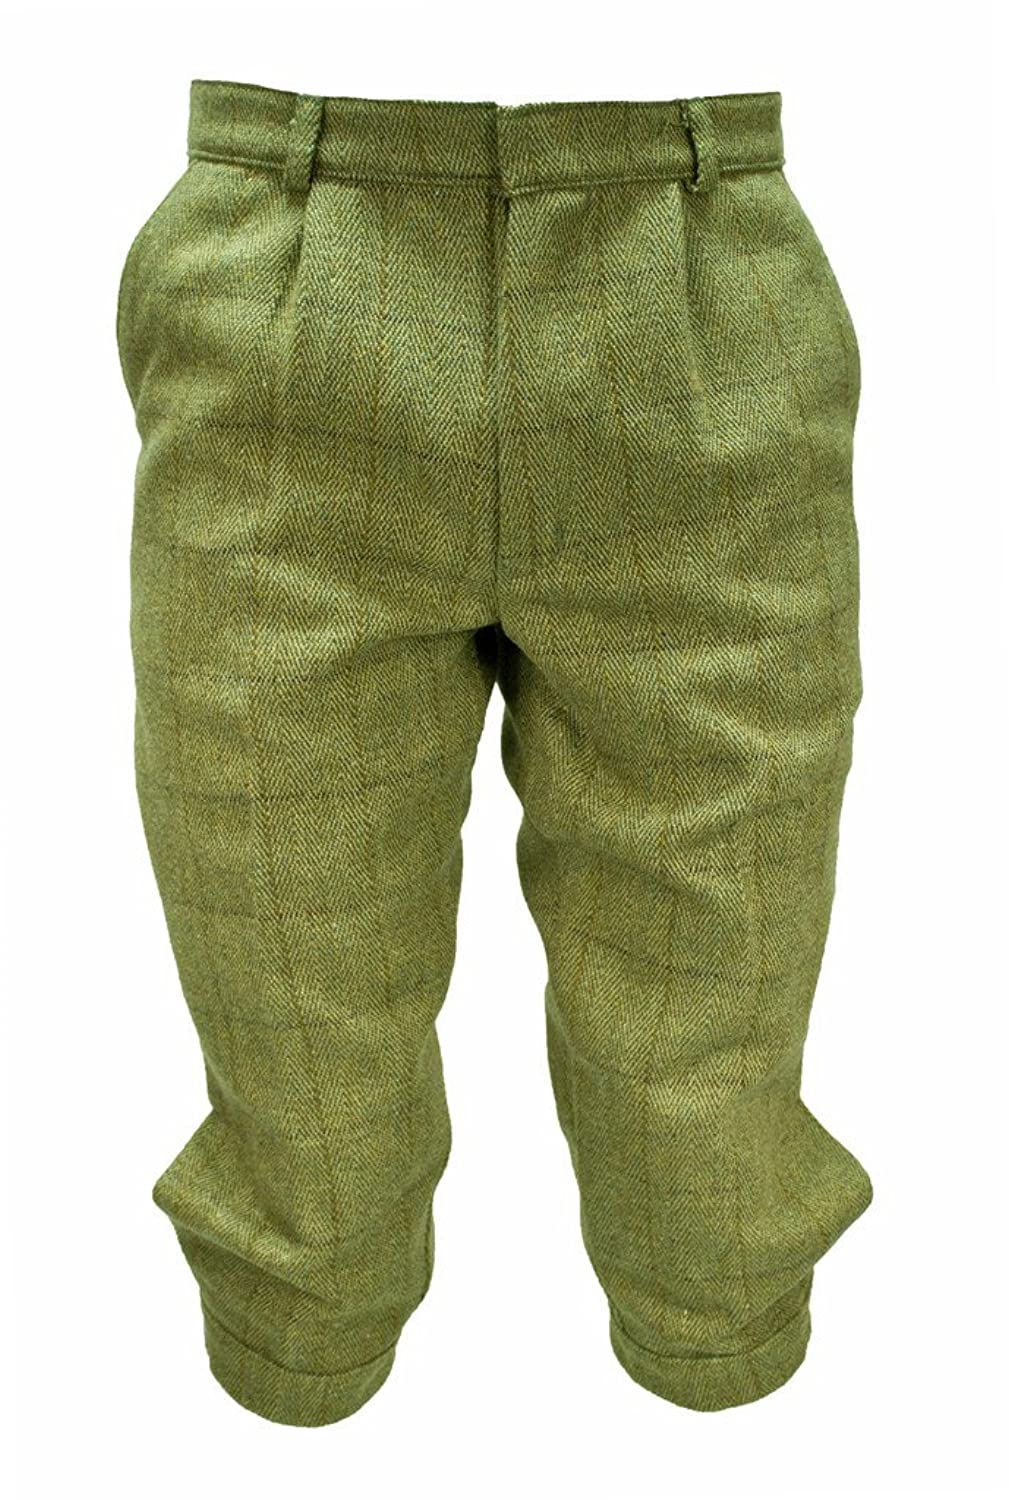 Vintage Shorts, Culottes,  Capris History Tweed Breeks Trousers Pants Plus Fours by WWK / WorkWear King $54.95 AT vintagedancer.com